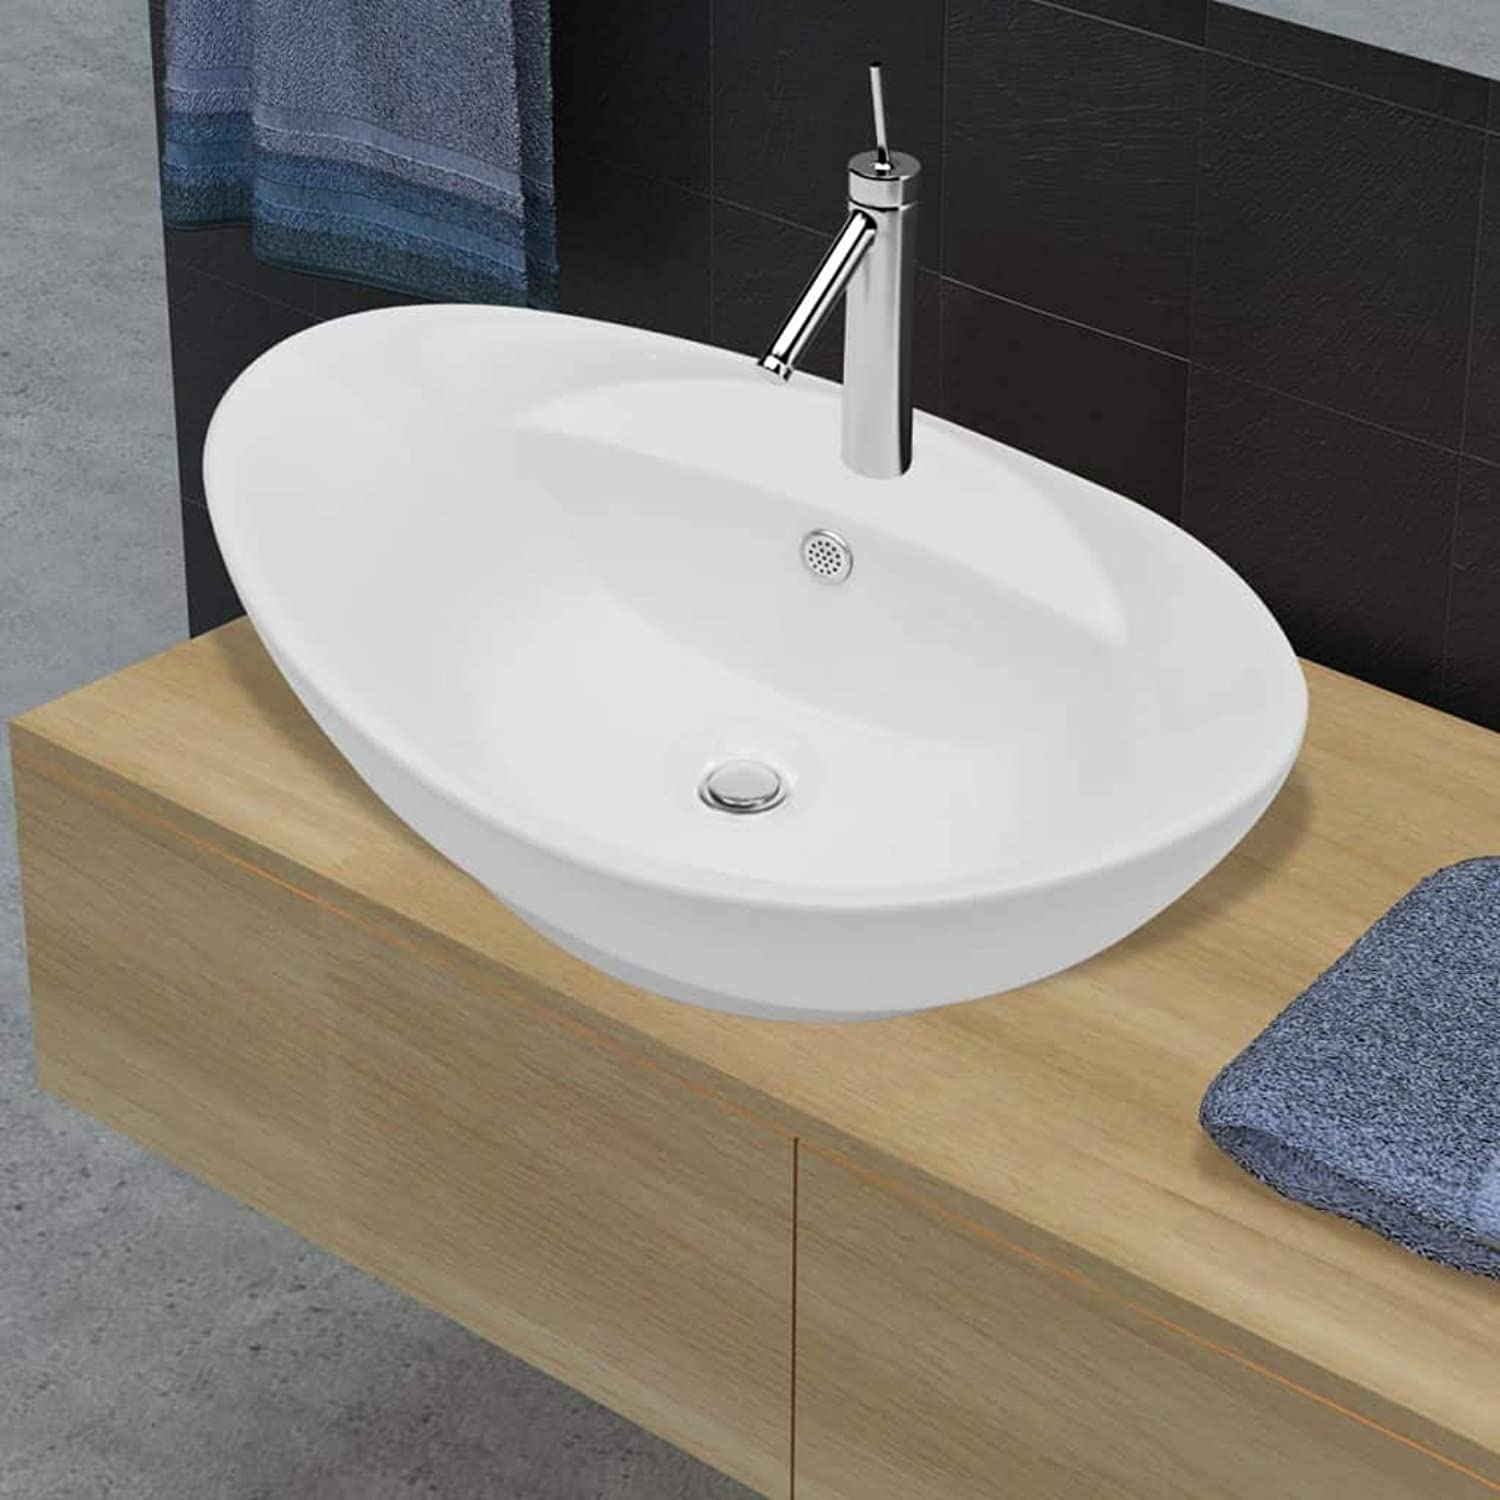 Oval Ceramic Bathroom Sink with Tap Hole and Overflow 585 x 390 x 210 mm